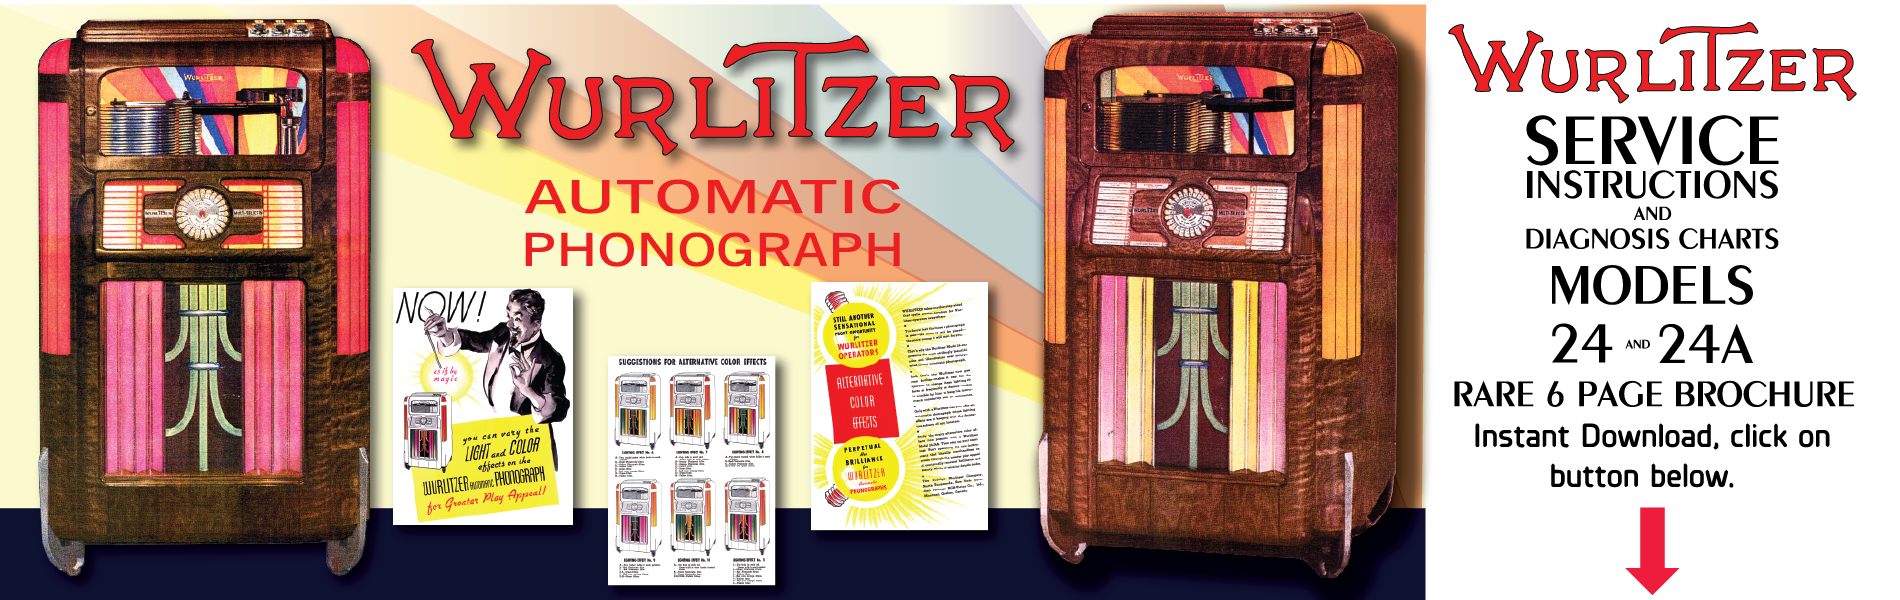 Wurlitzer Model 24 (1937) 6 Page Brochure